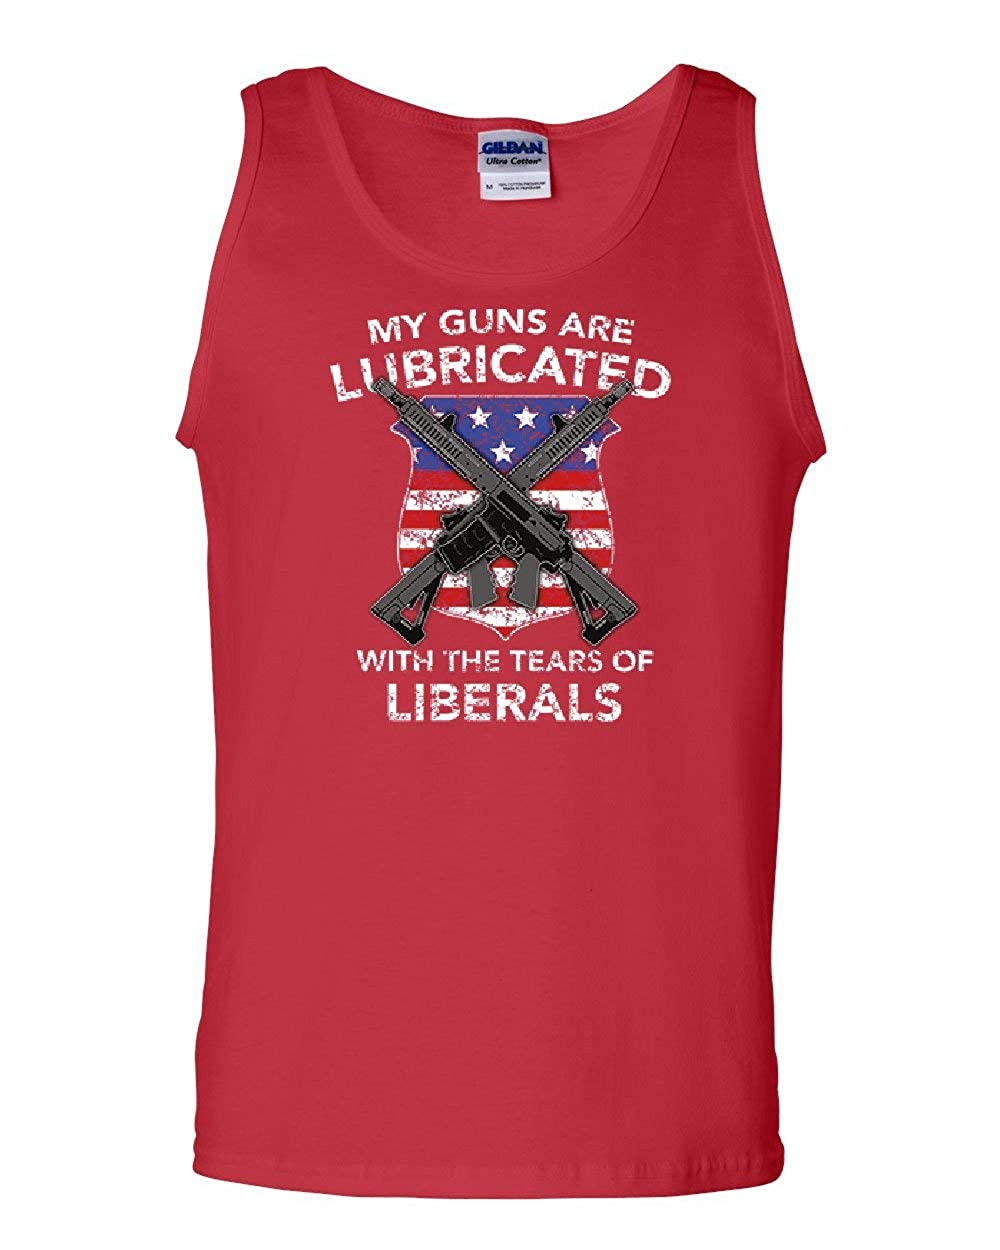 Guns Lubricated with Tears of Liberals Tank Top 2nd Amendment Sleeveless